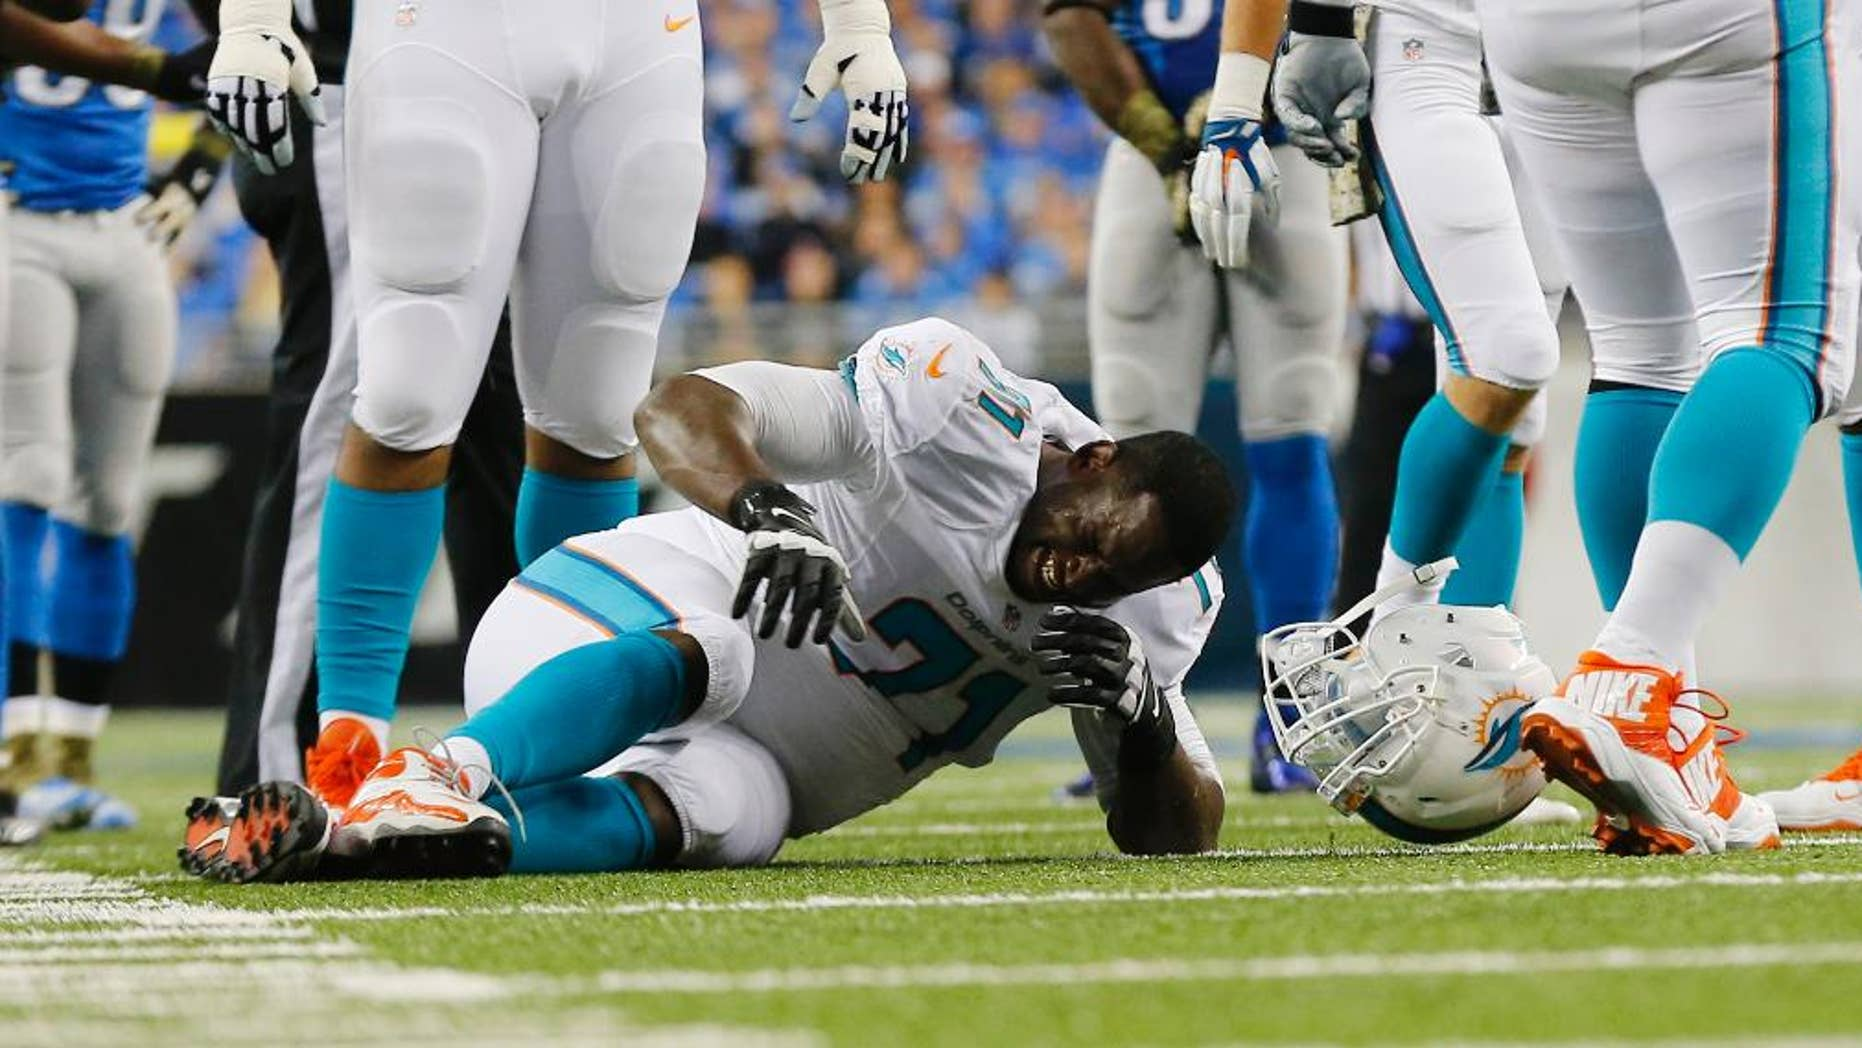 Miami Dolphins tackle Branden Albert (71) grimaces during the first half of an NFL football game against the Detroit Lions in Detroit, Sunday, Nov. 9, 2014. Albert was carted off the field. (AP Photo/Paul Sancya)